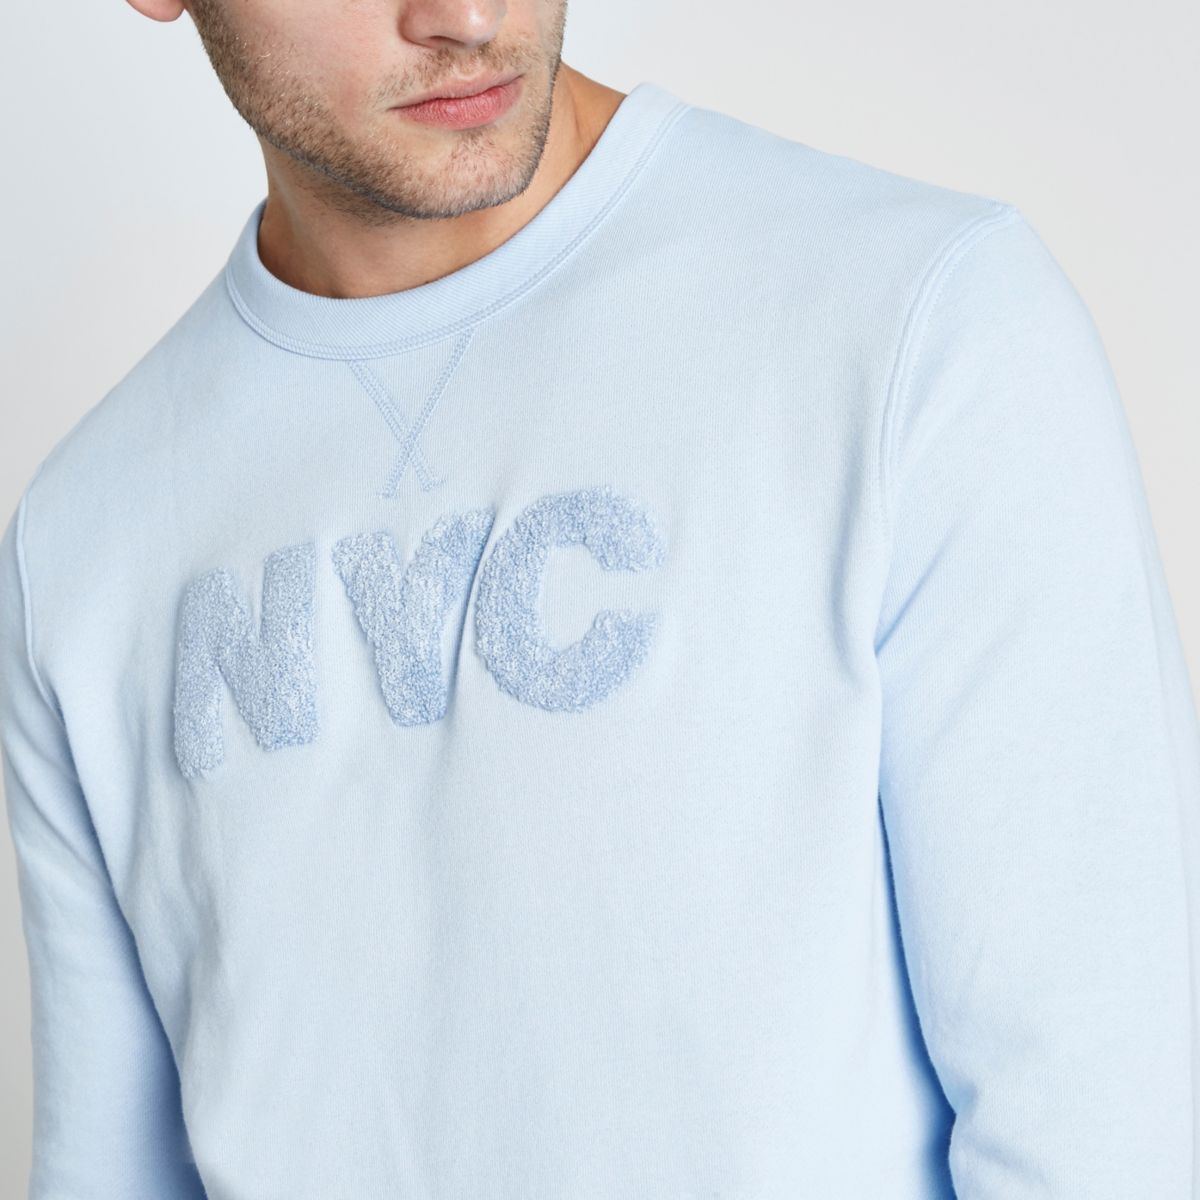 Blue long sleeve 'NYC' applique sweatshirt